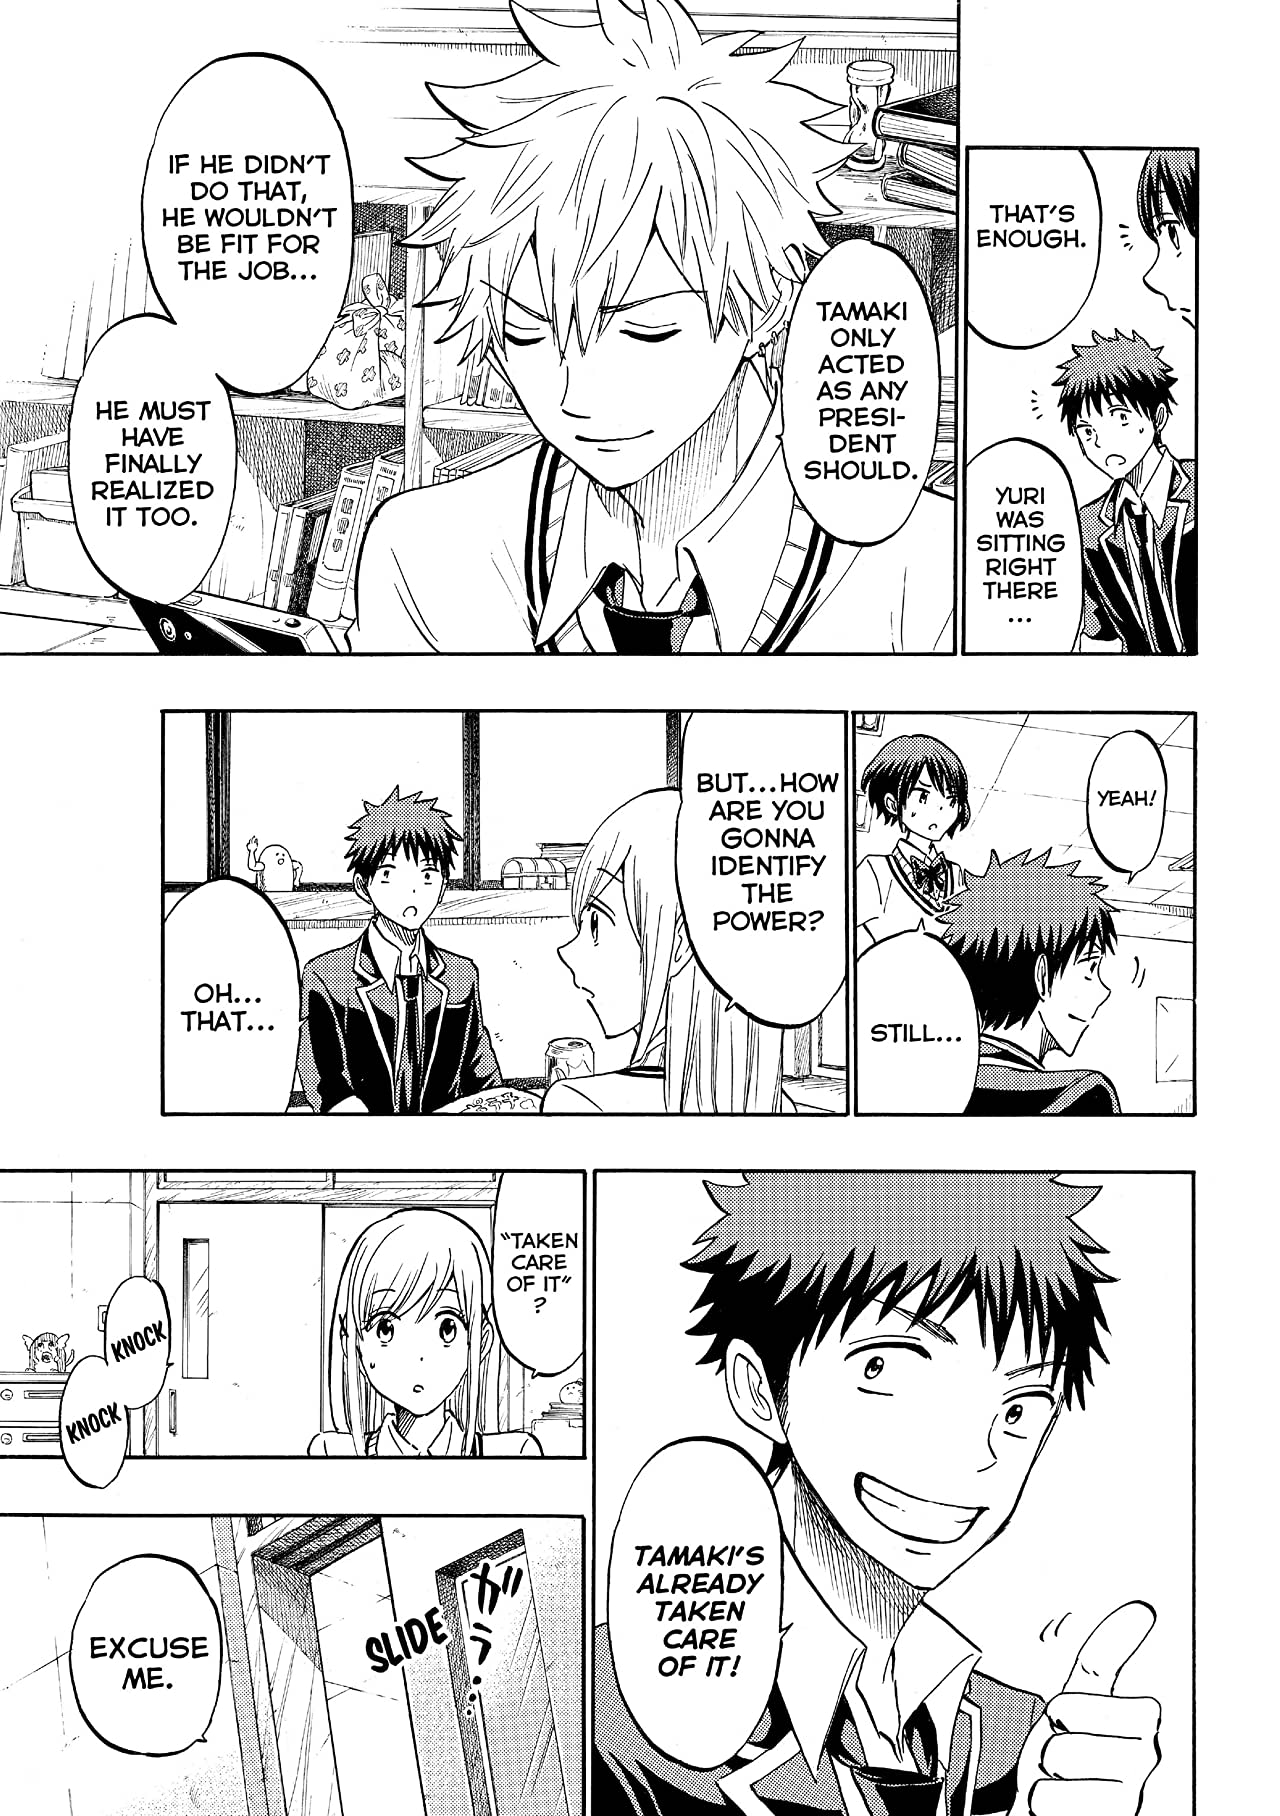 Yamada-kun and the Seven Witches #188